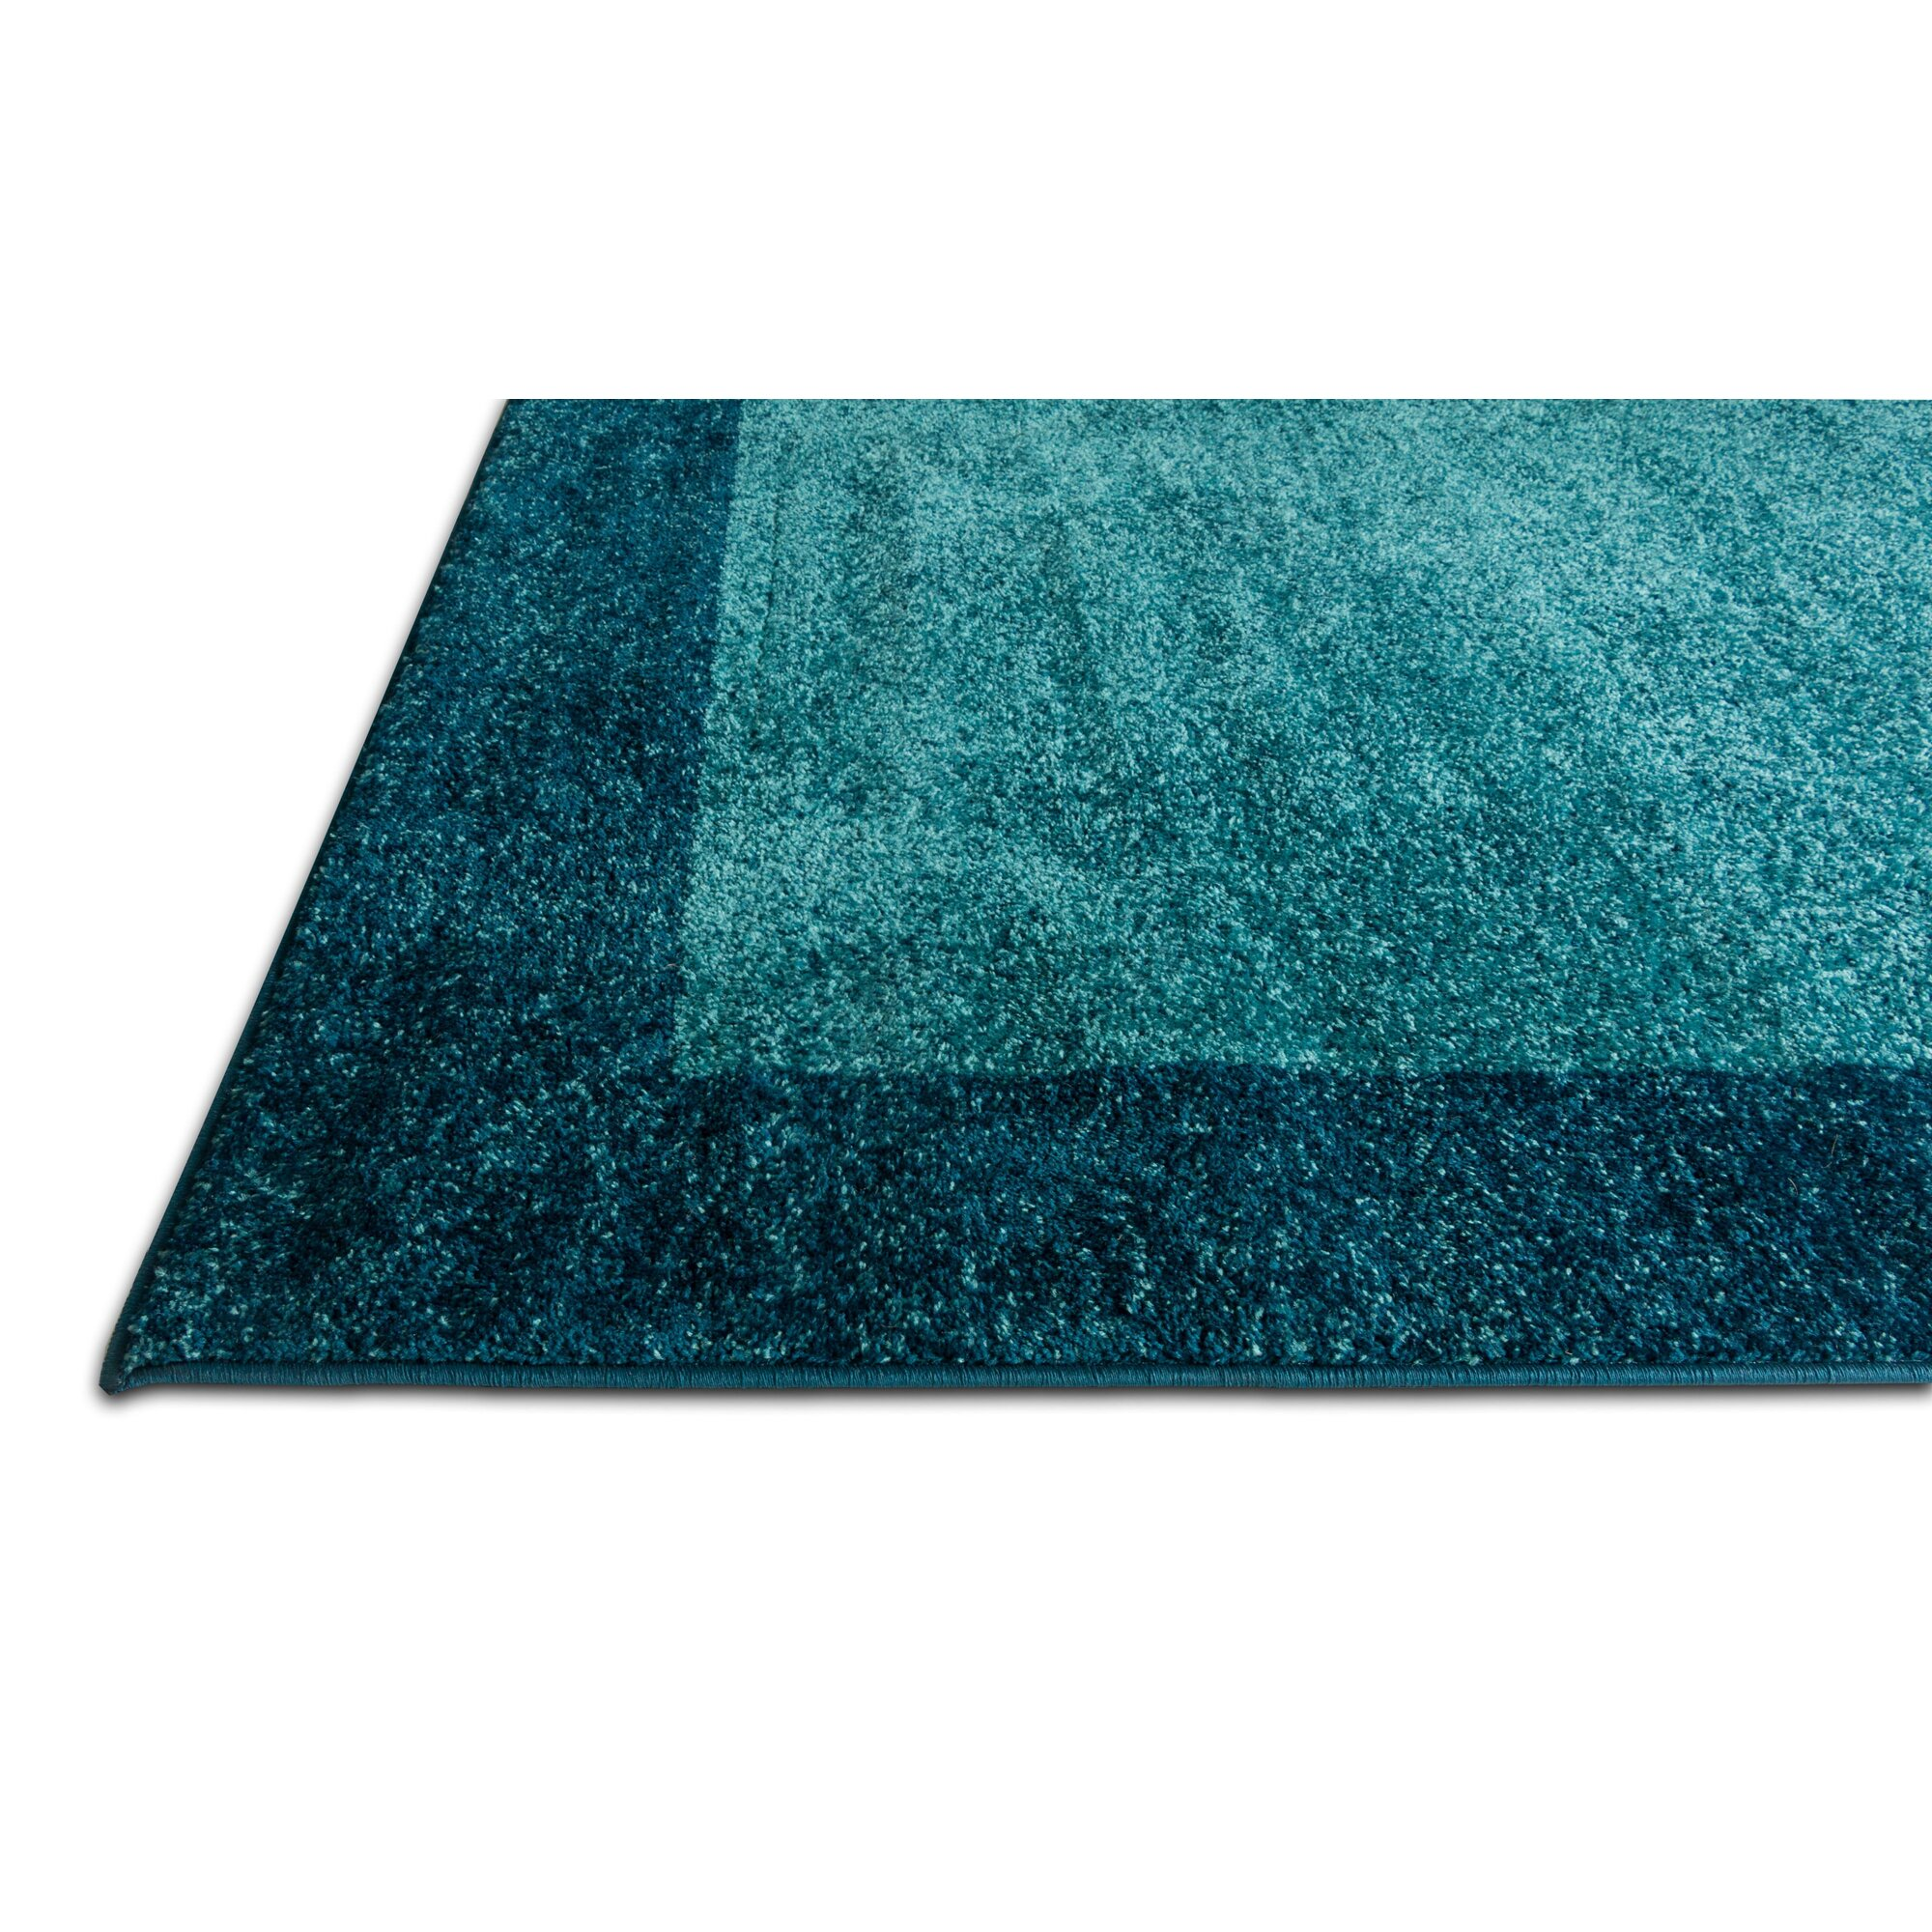 Ebern Designs Angie Transitional Ombre Border Distressed Blue Area Rug : Wayfair.ca